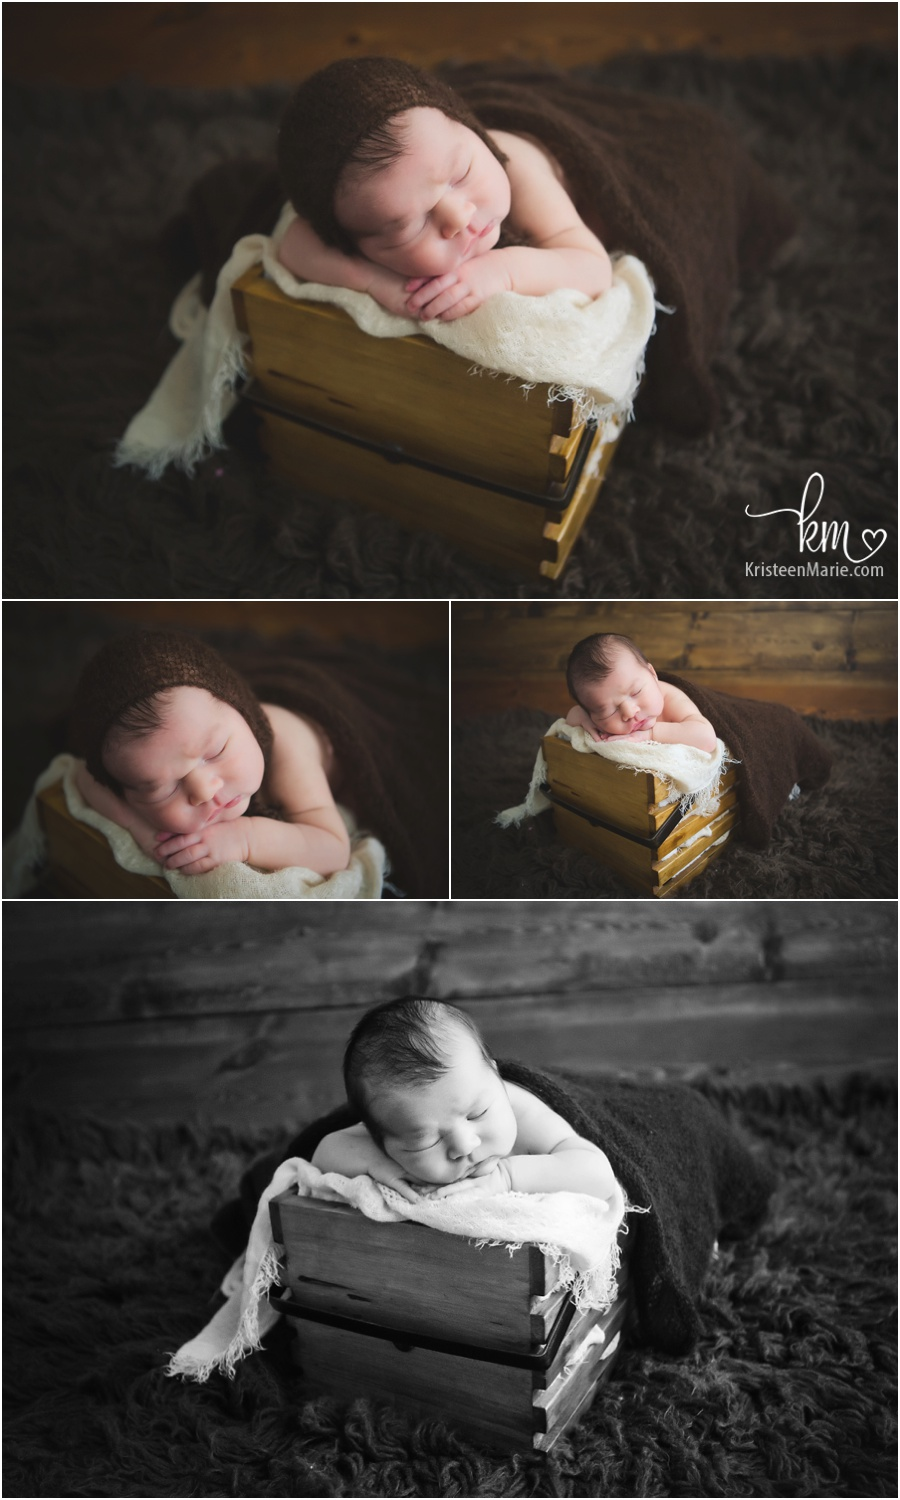 newborn boy in a basket